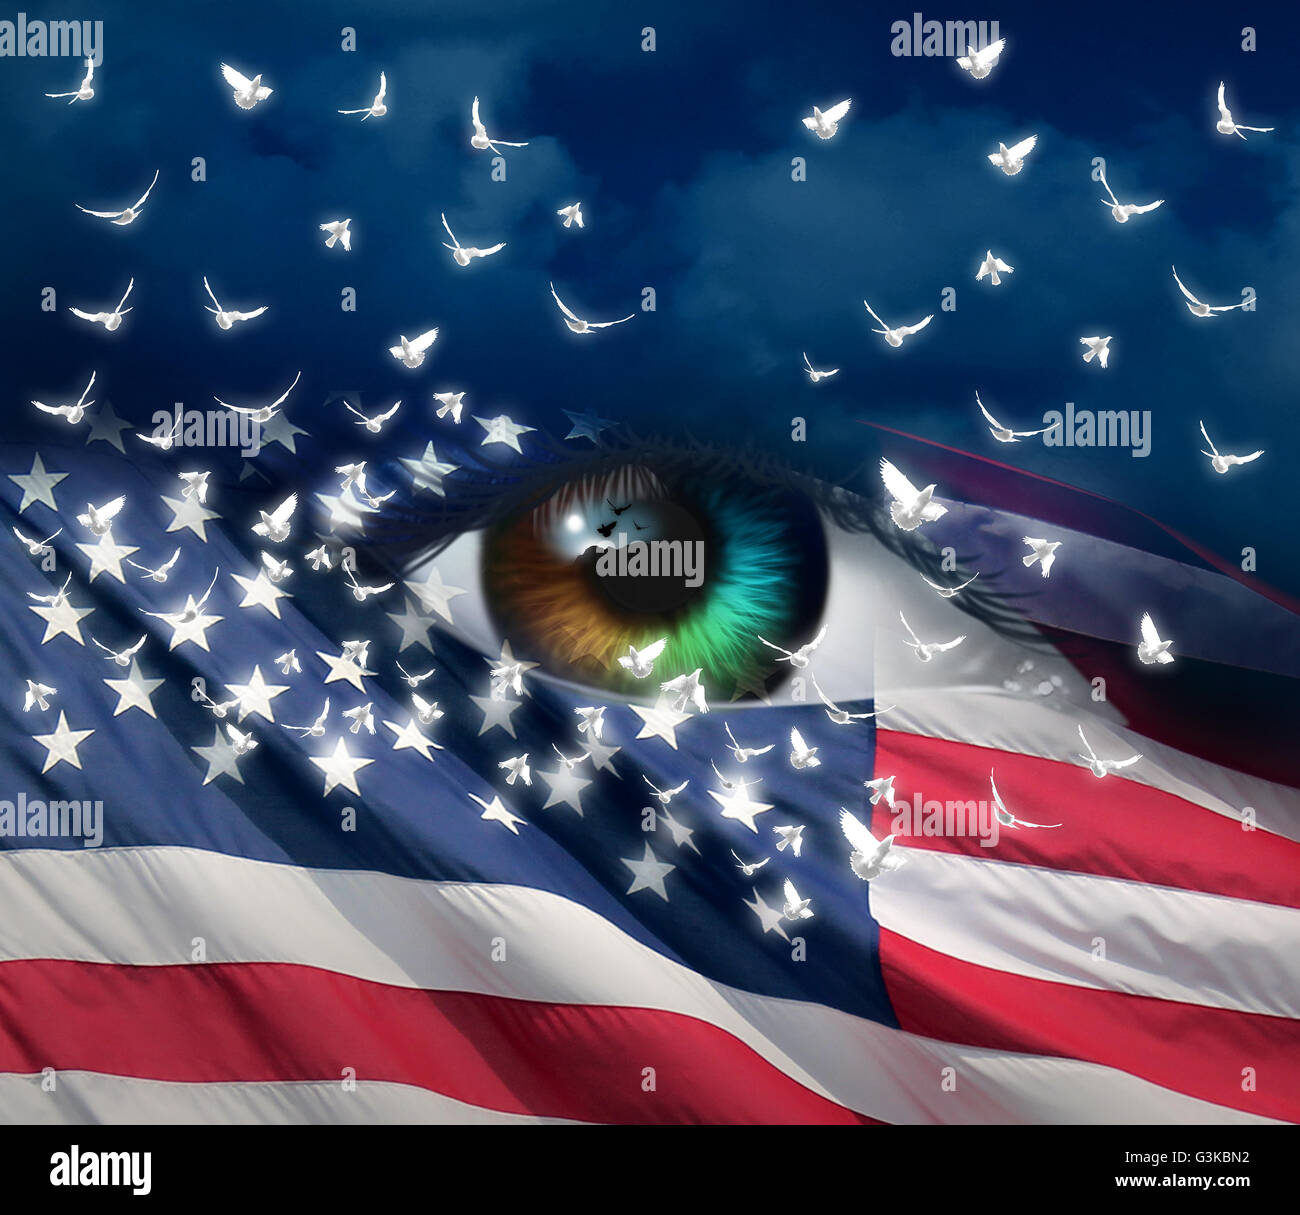 Grief and sorrow in America concept as a diverse human eye with the flag of the United Staes with doves emerging - Stock Image